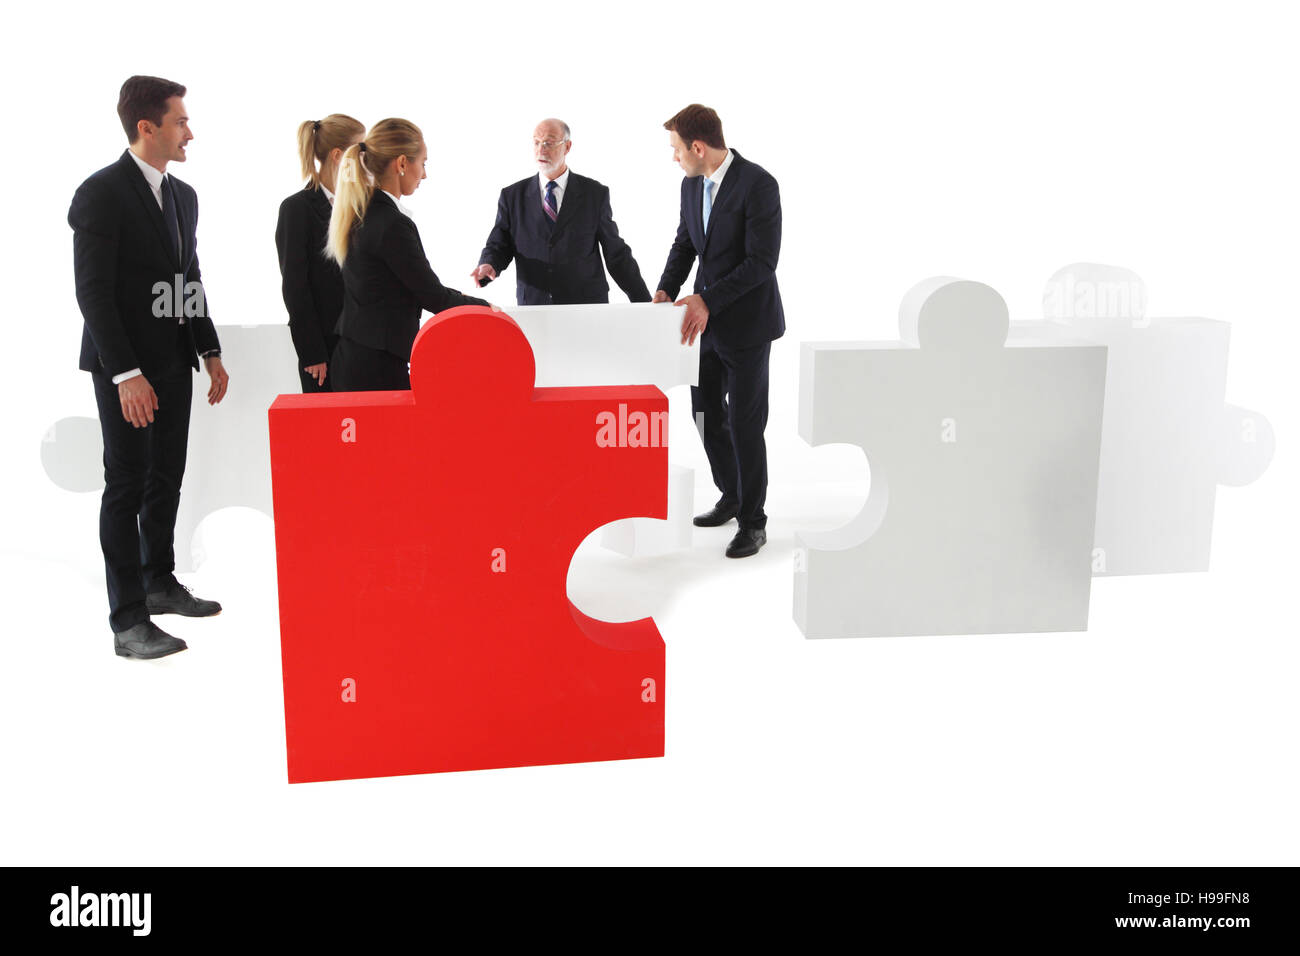 Group of business people assembling pieces of a puzzle isolated on white background - Stock Image